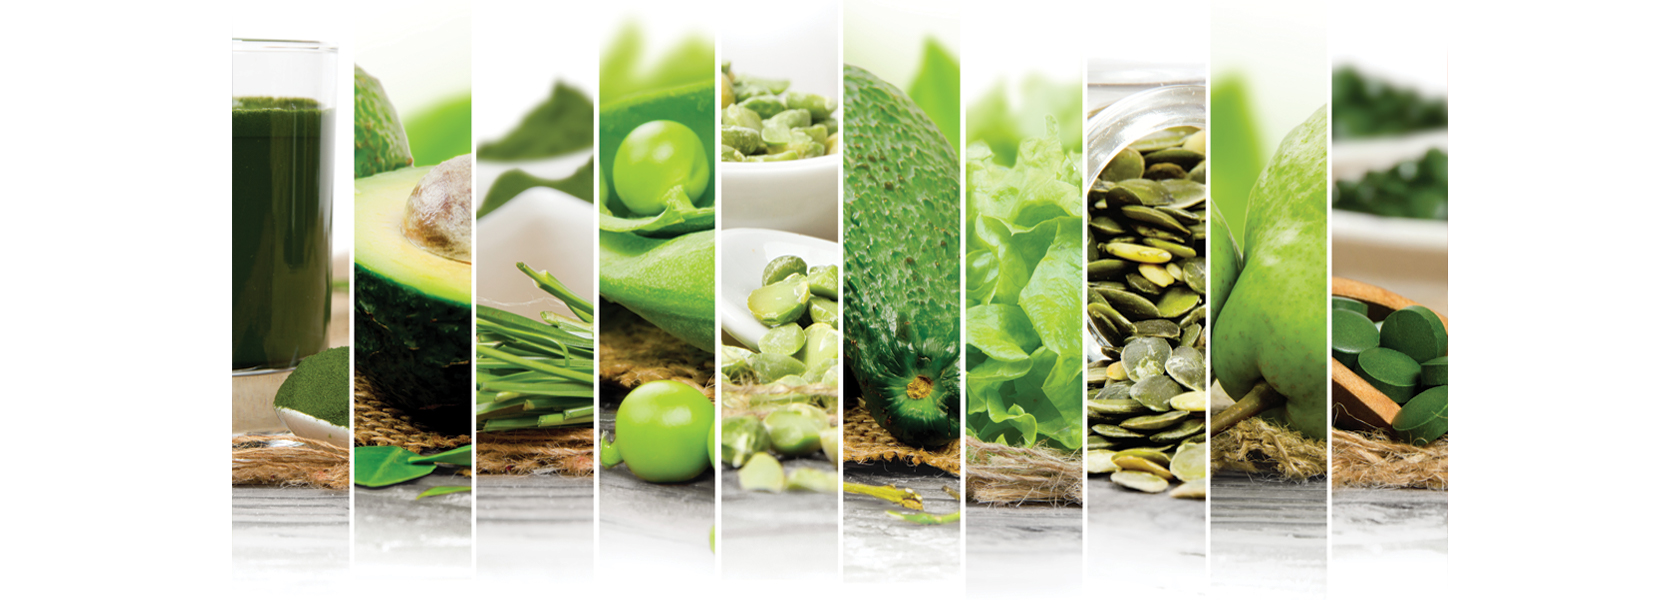 A variety of healthy green vegetables and supplements to help improve optimum nutrition